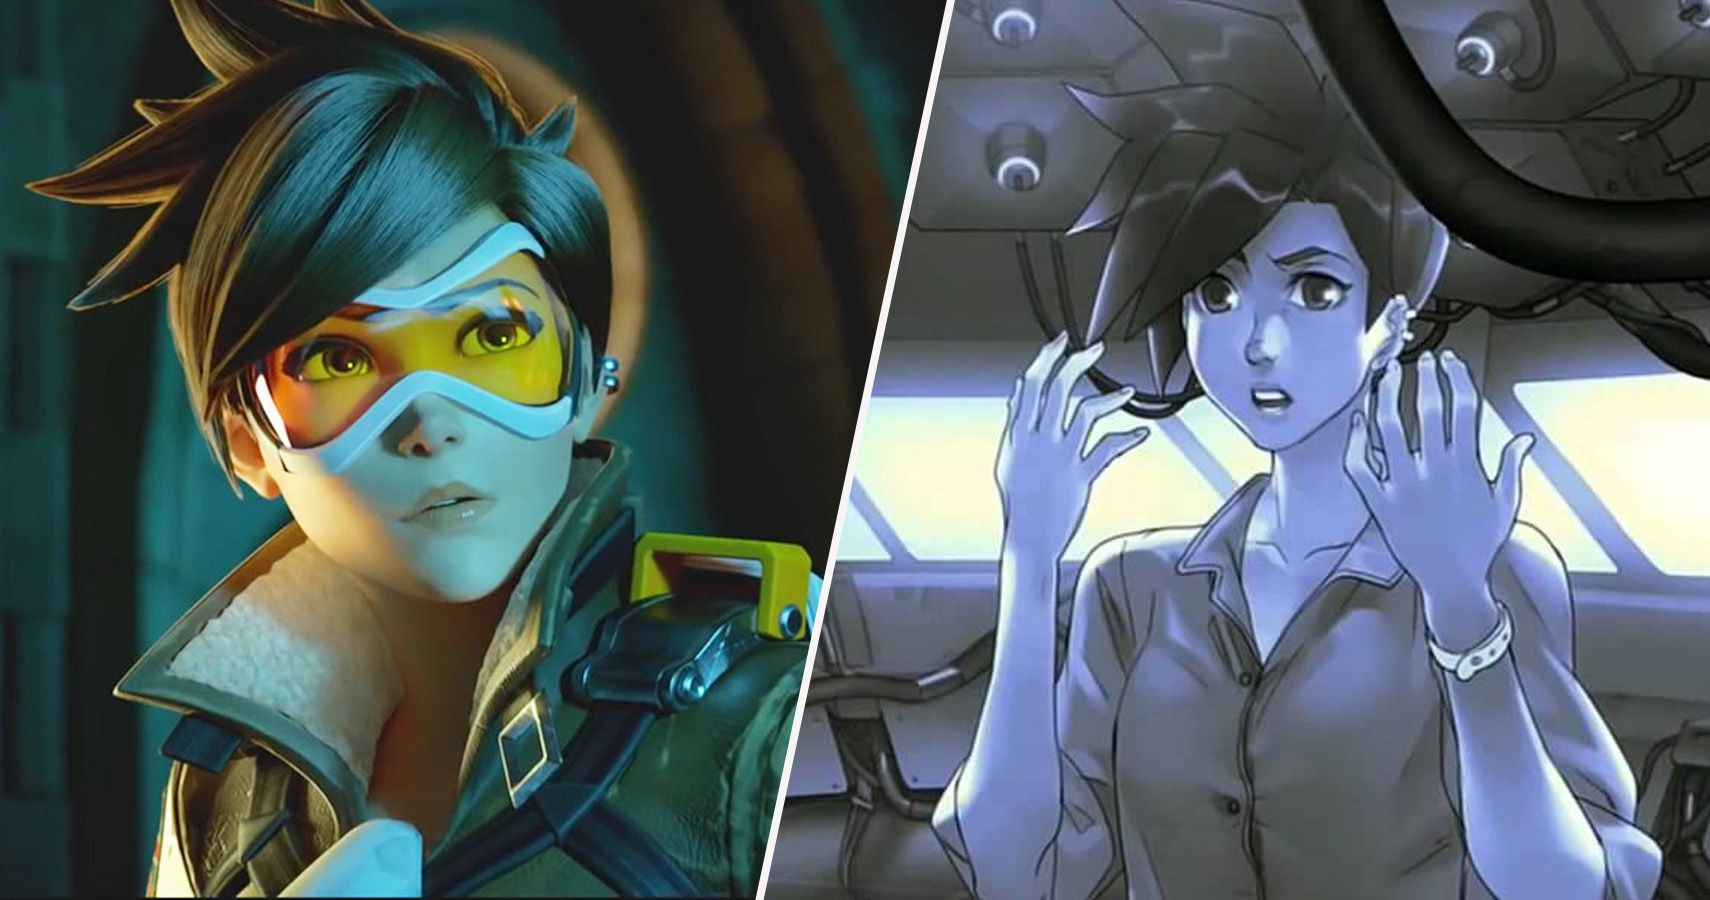 Overwatch: 25 Things About Tracer That Make No Sense | TheGamer